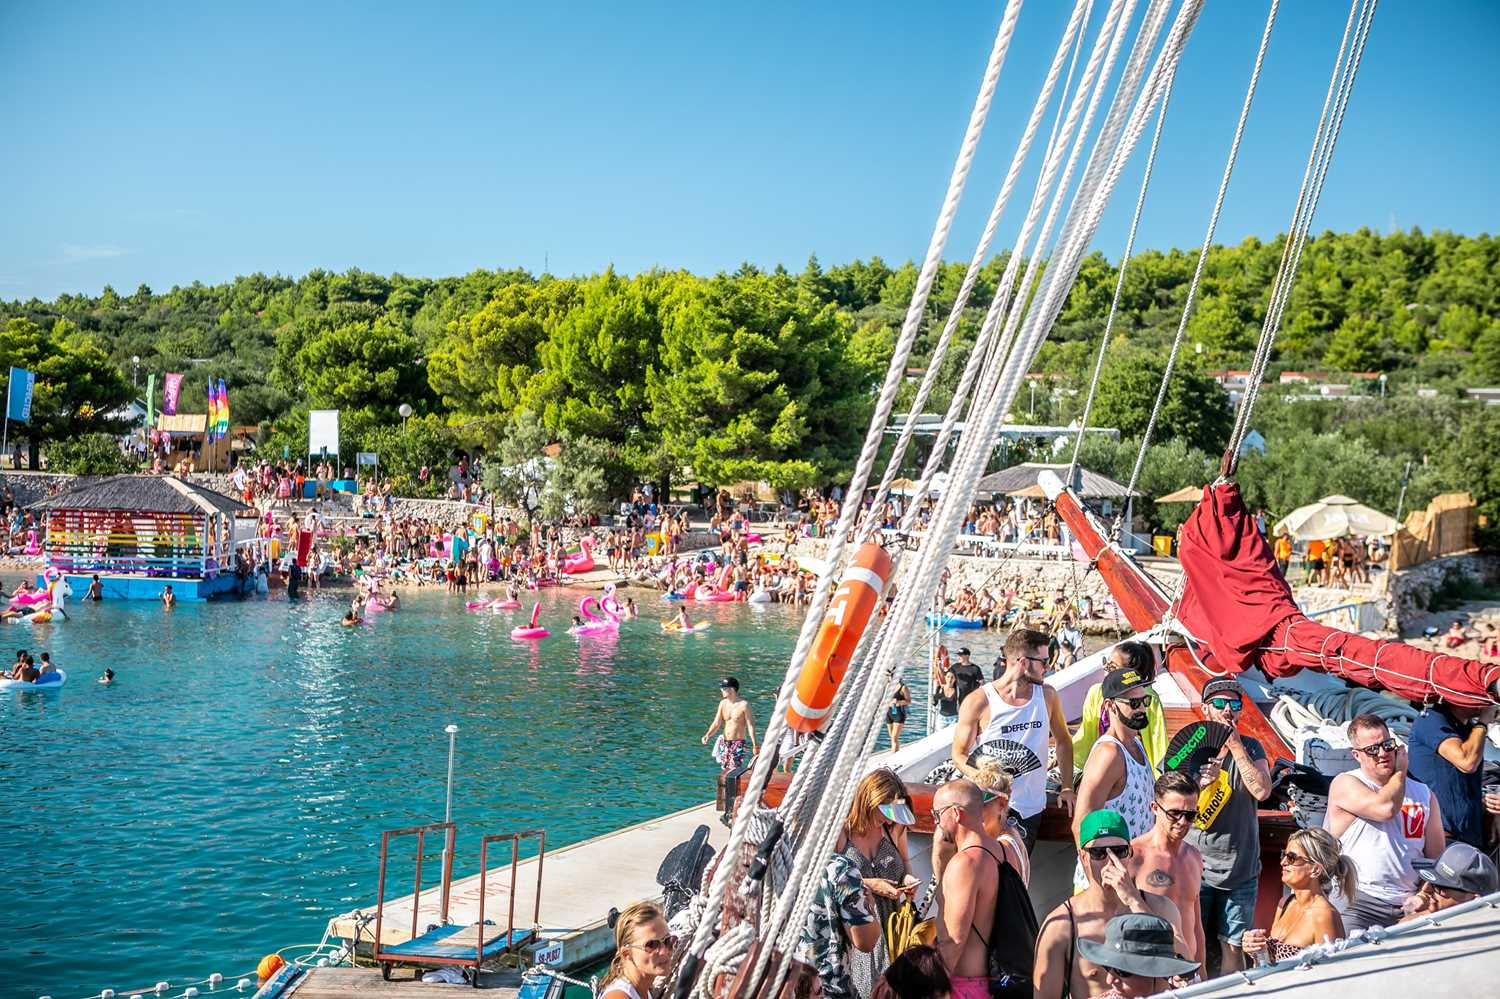 The Ultimate Music Festival Experience for 2 at Defected Croatia 2021, Plus Flights, Accommodation - Image 3 of 5